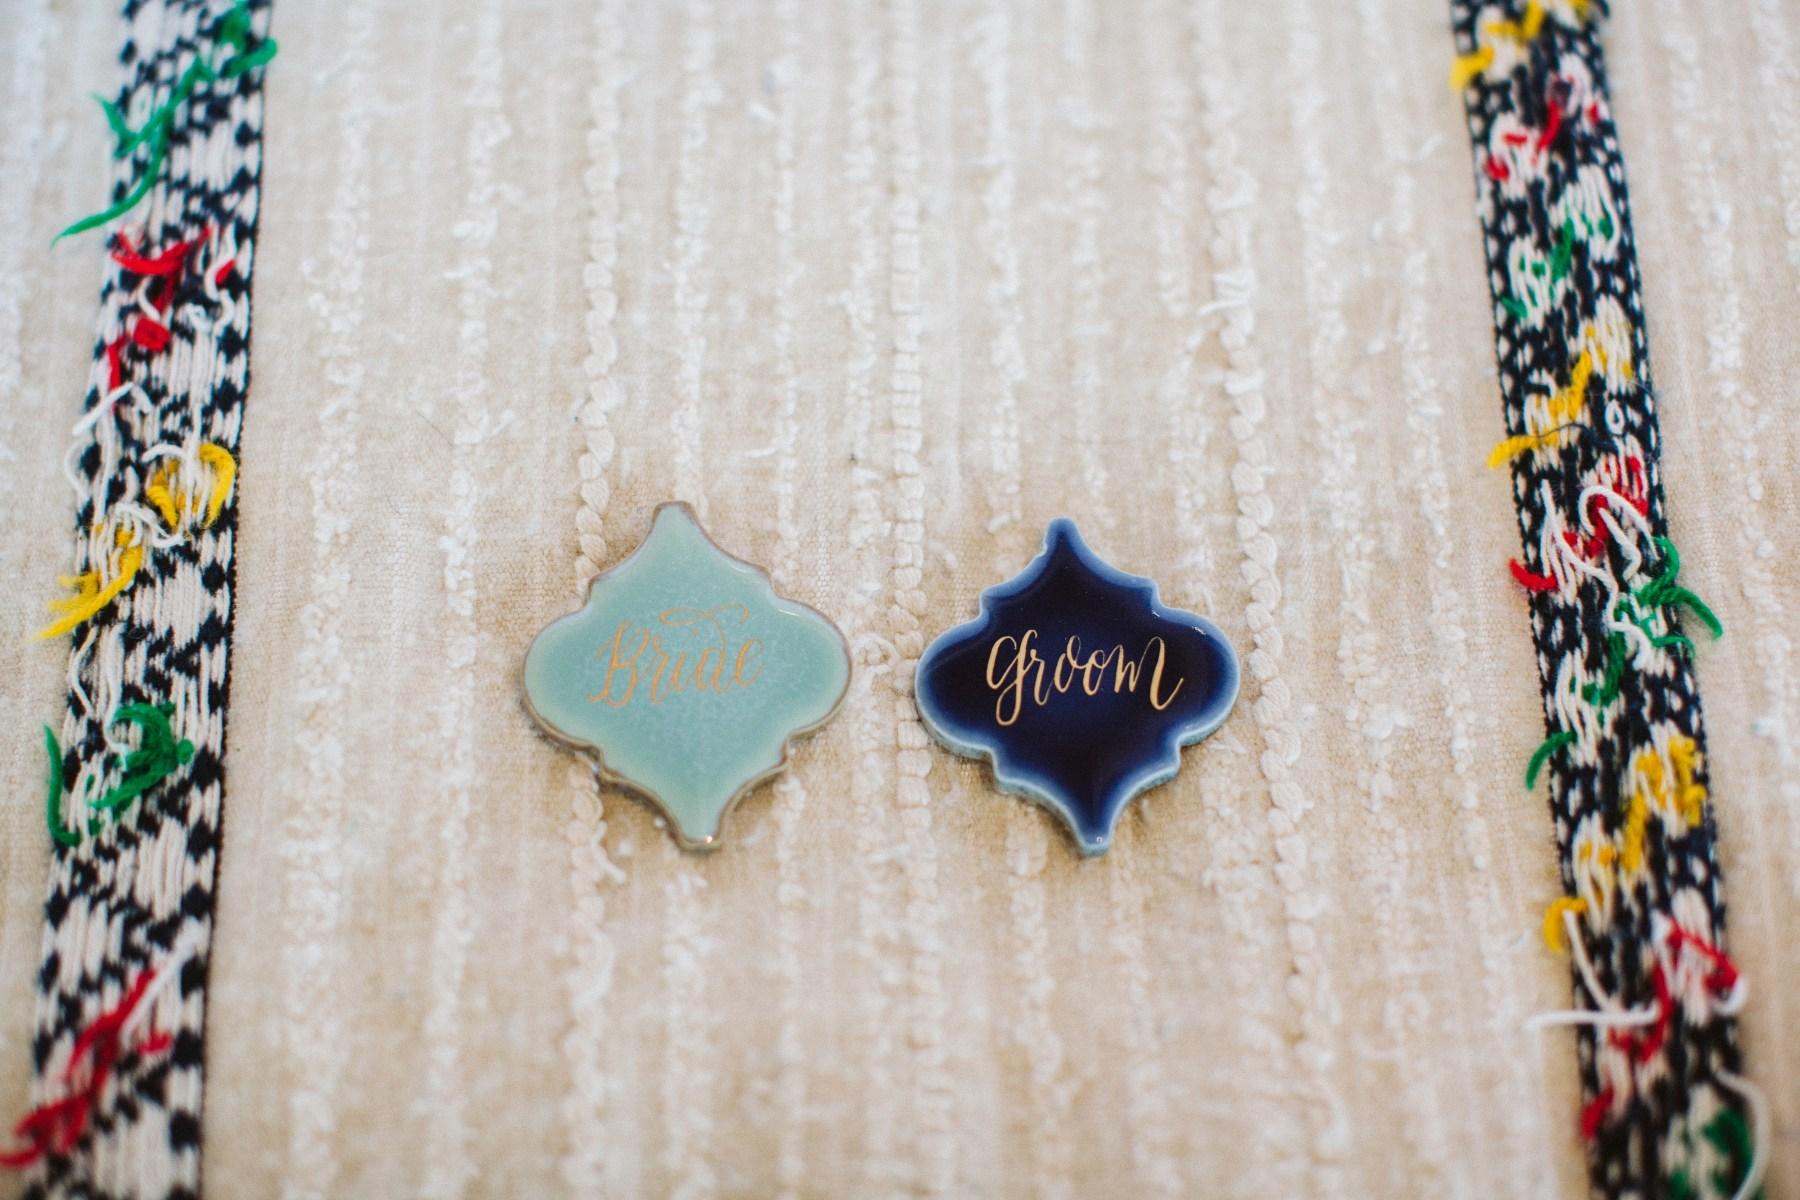 Moroccan Arabesque tiles used as place cards for your wedding reception | Tiles by Anchored Paper Co. | Sara Parsons Photography | Perfectly Posh Events